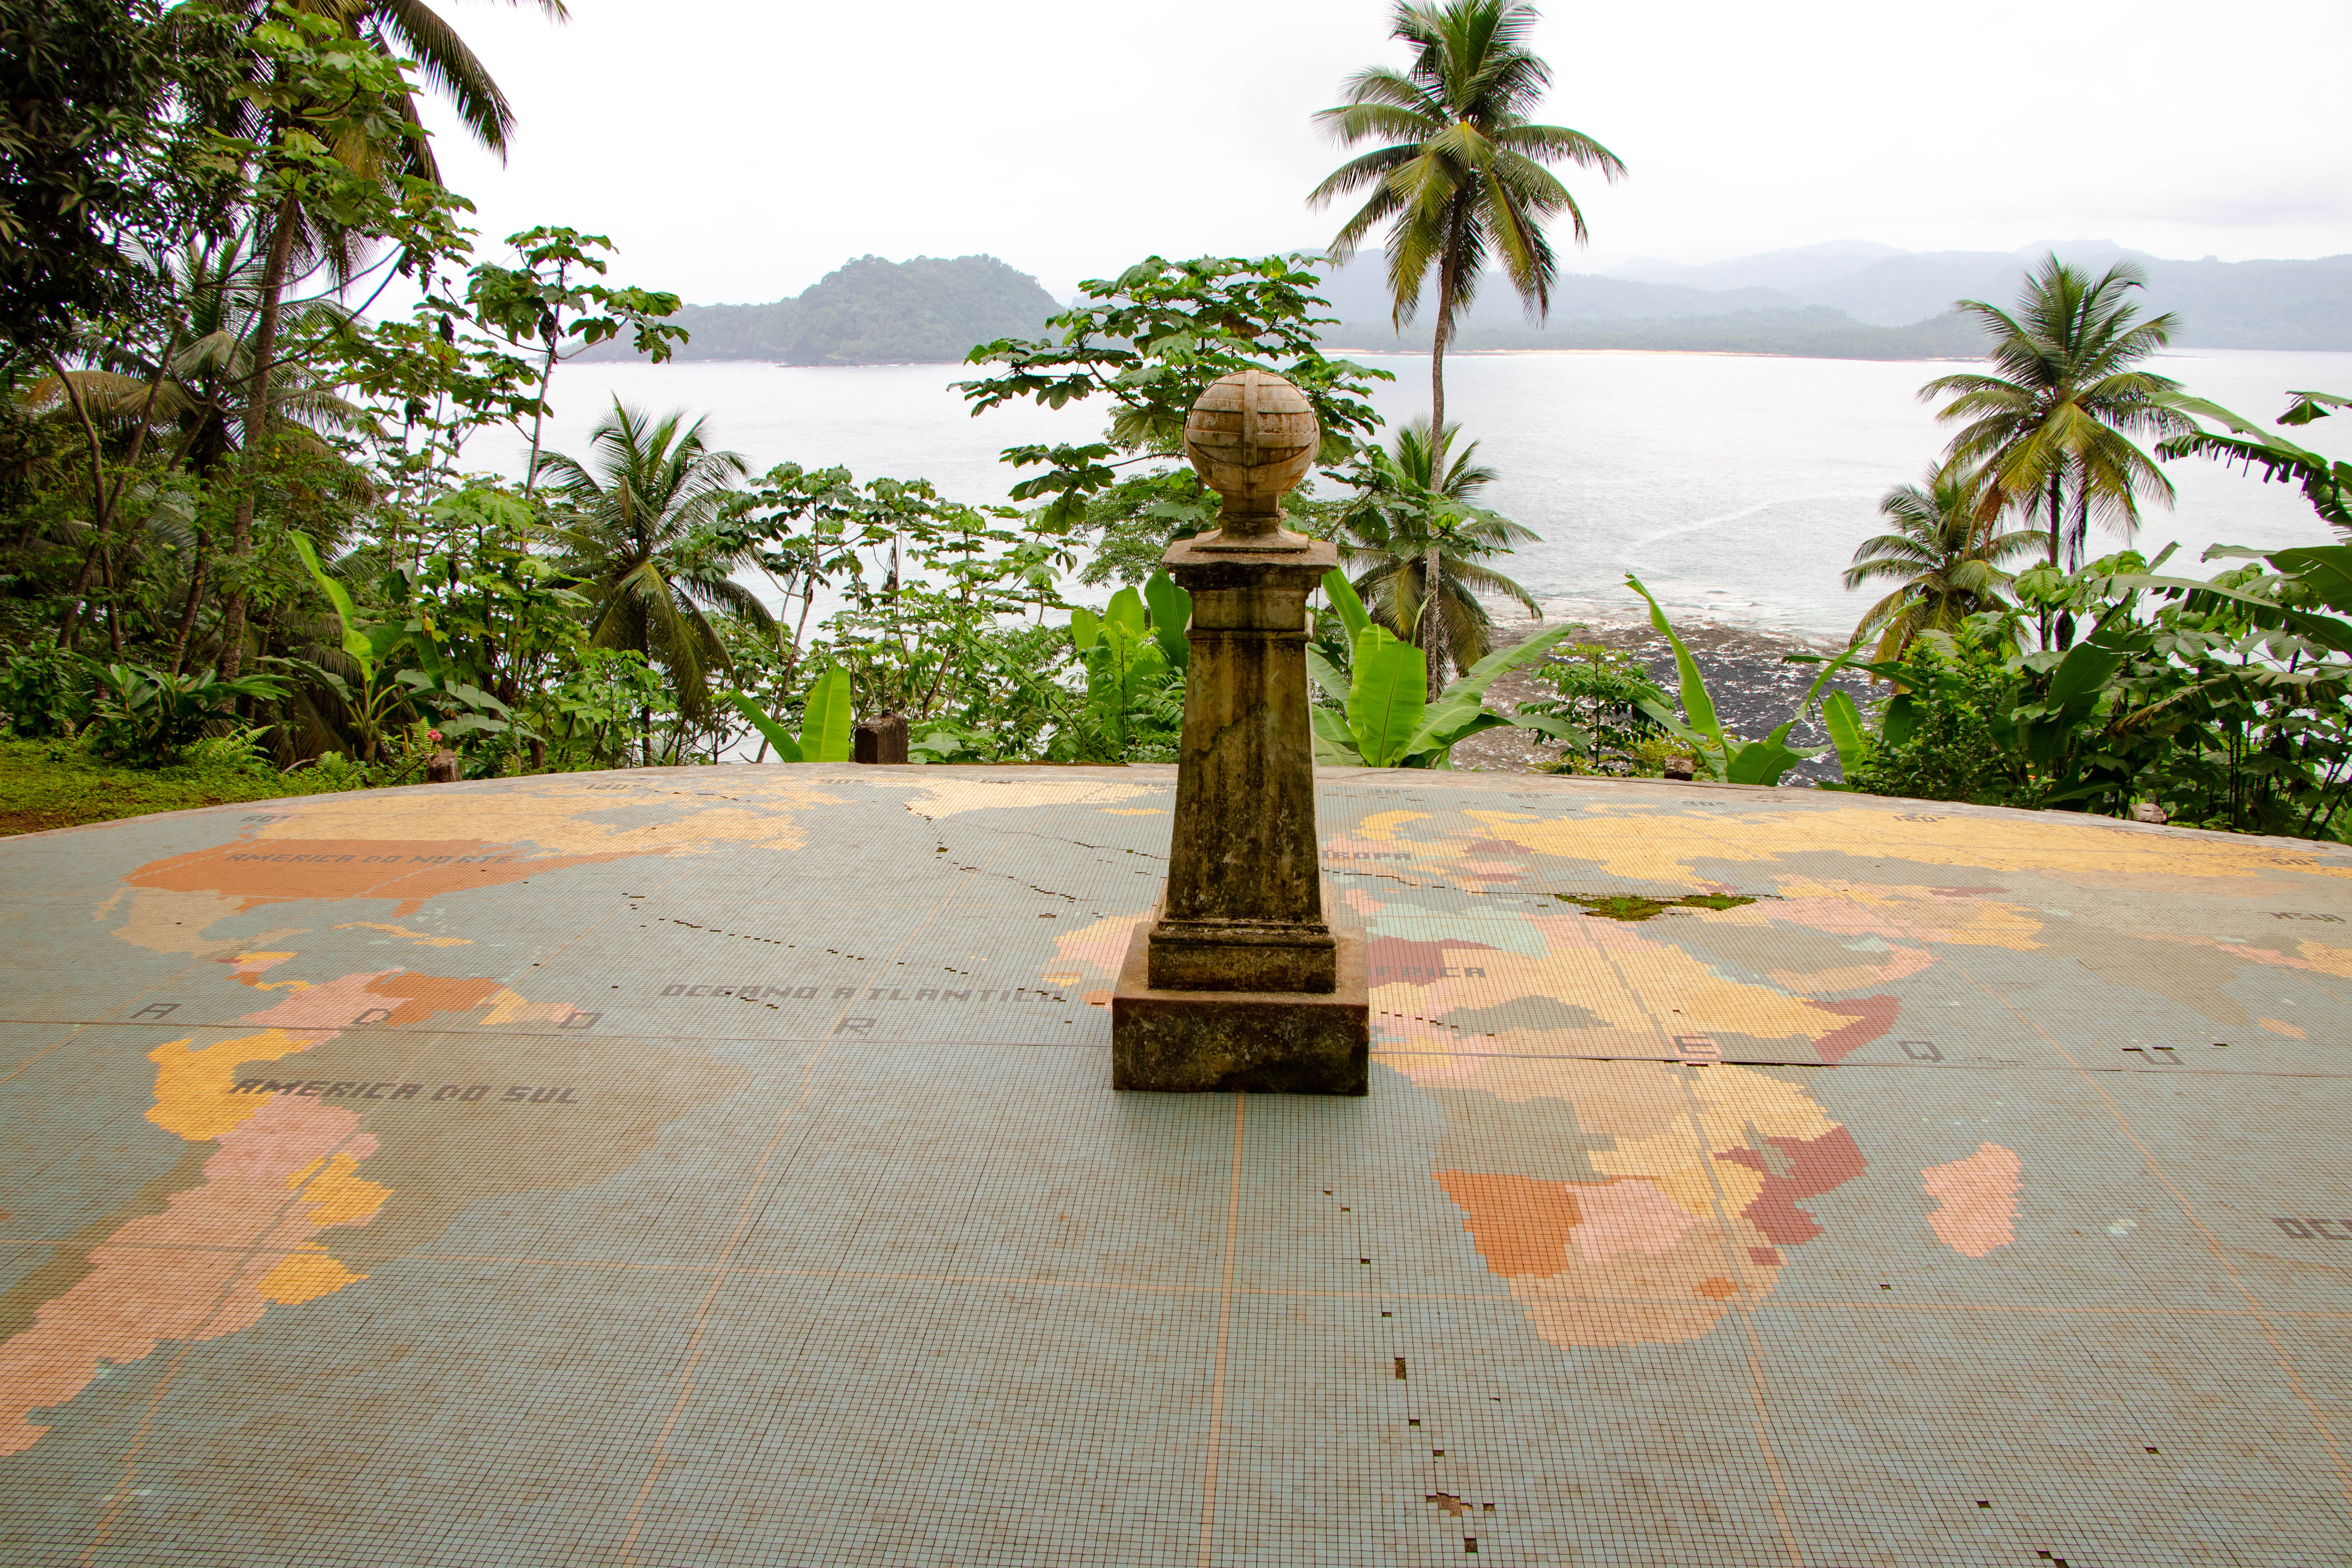 Equator Sao Tome - Travel - Where to stay in Sao Tome